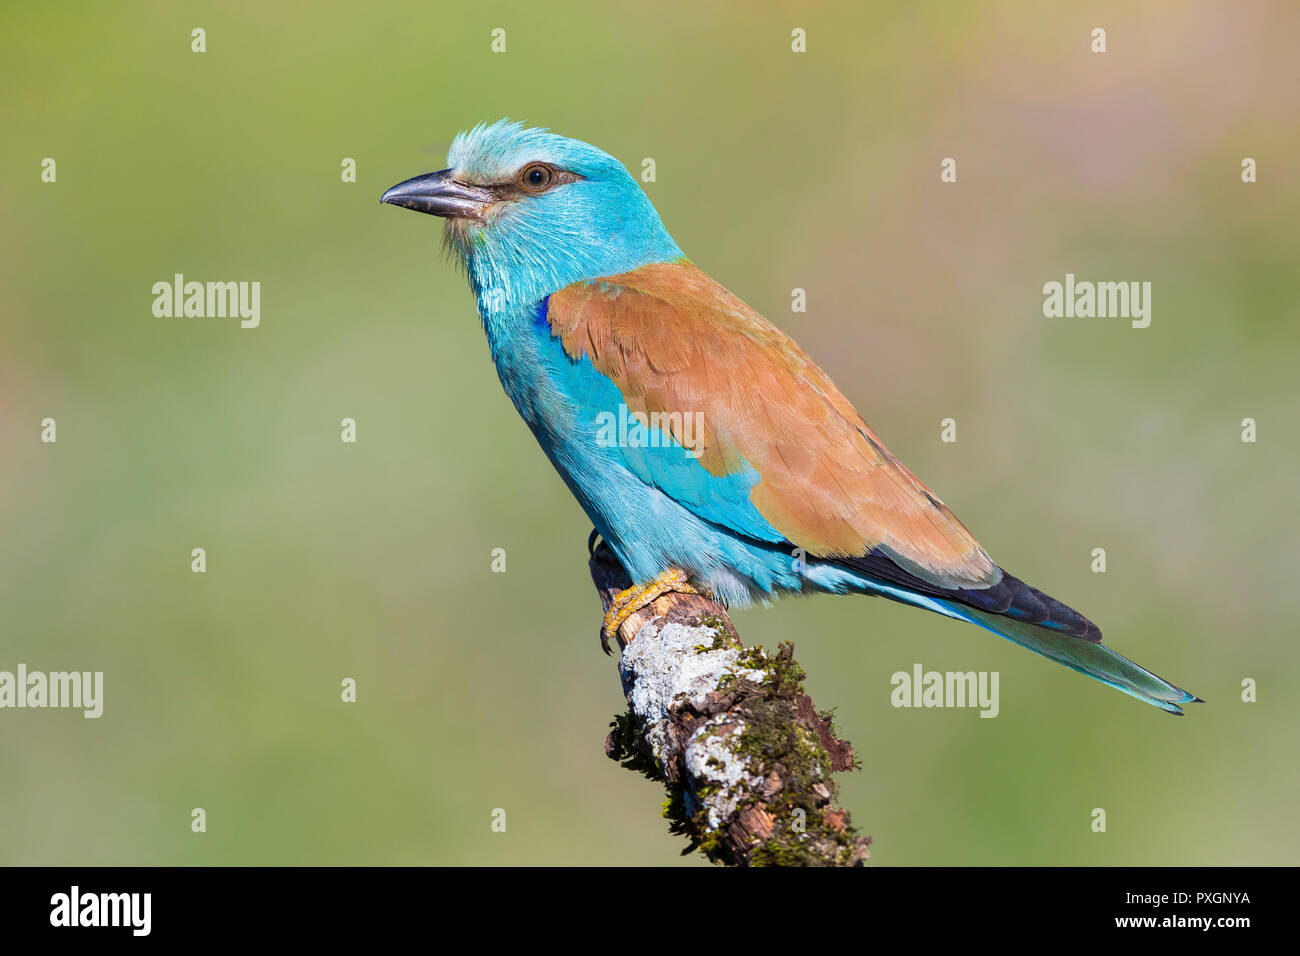 European Roller (Coracias garrulus), side view of an adult perched on a branch Stock Photo